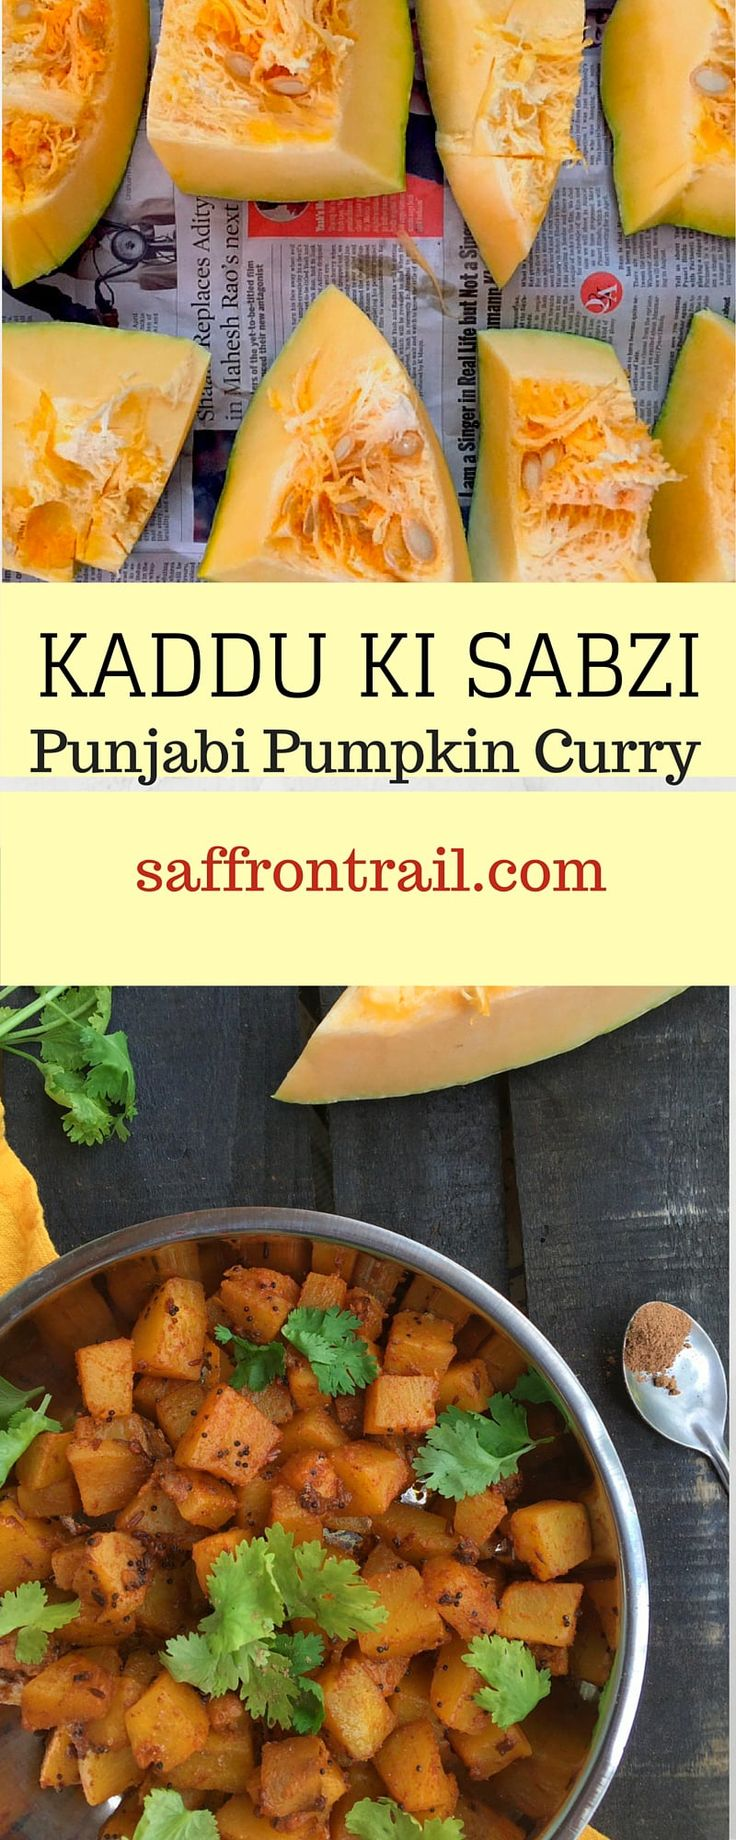 This authentic recipe for Punjabi style Khatti Meethi Kaddu ki Sabzi comes from a friend's mother who is a brilliant cook. This is THE sabzi to eat with Pooris.